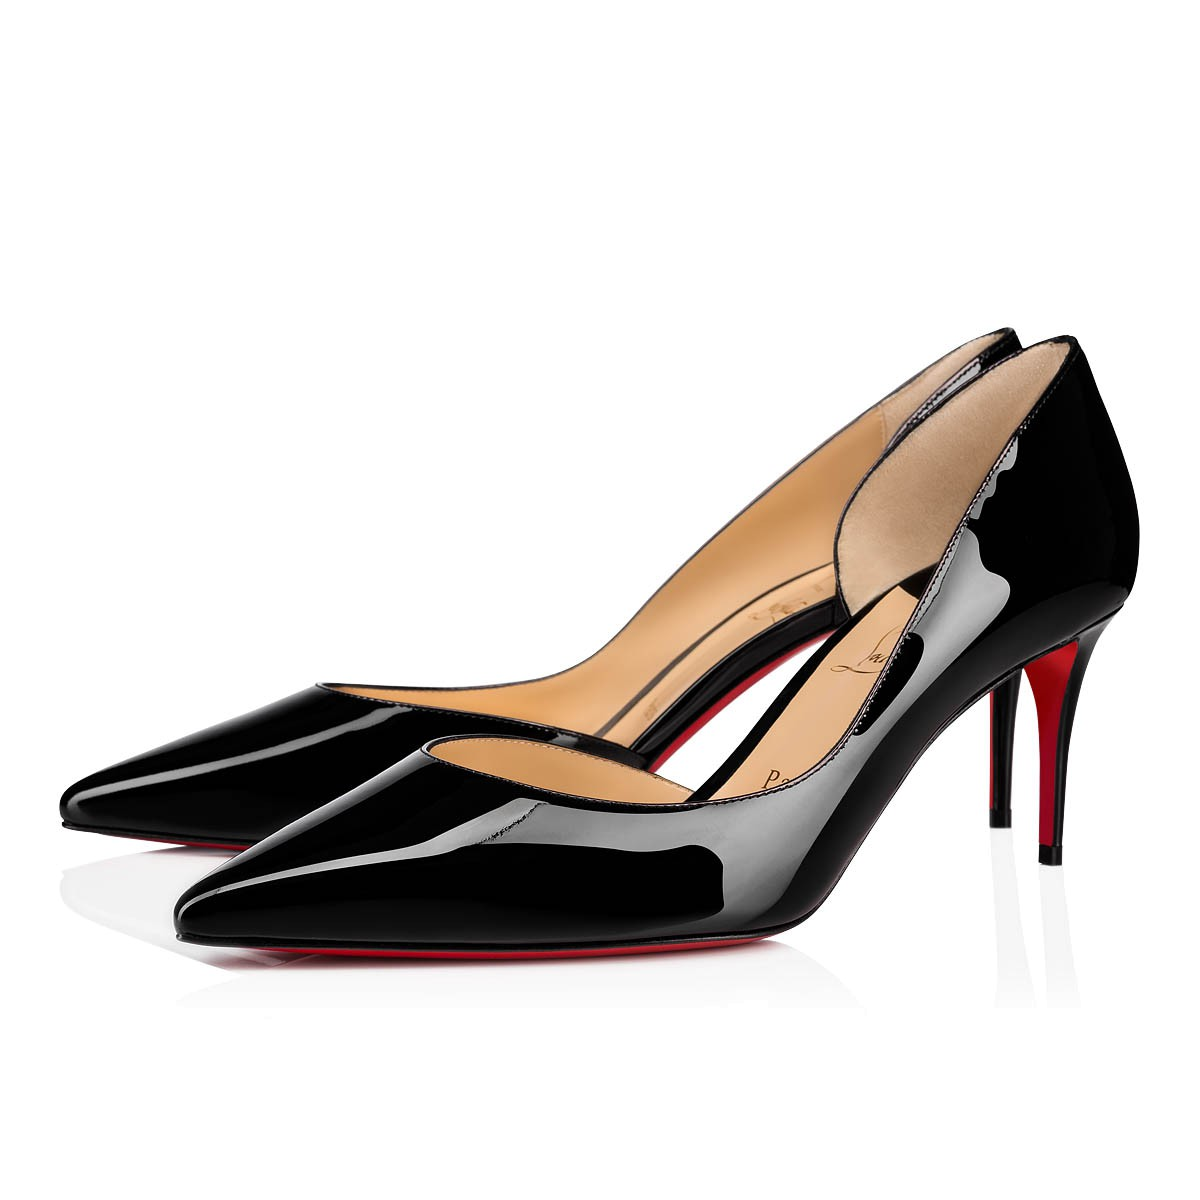 new concept d1126 ab4cf Iriza 70 Black Patent Leather - Women Shoes - Christian Louboutin